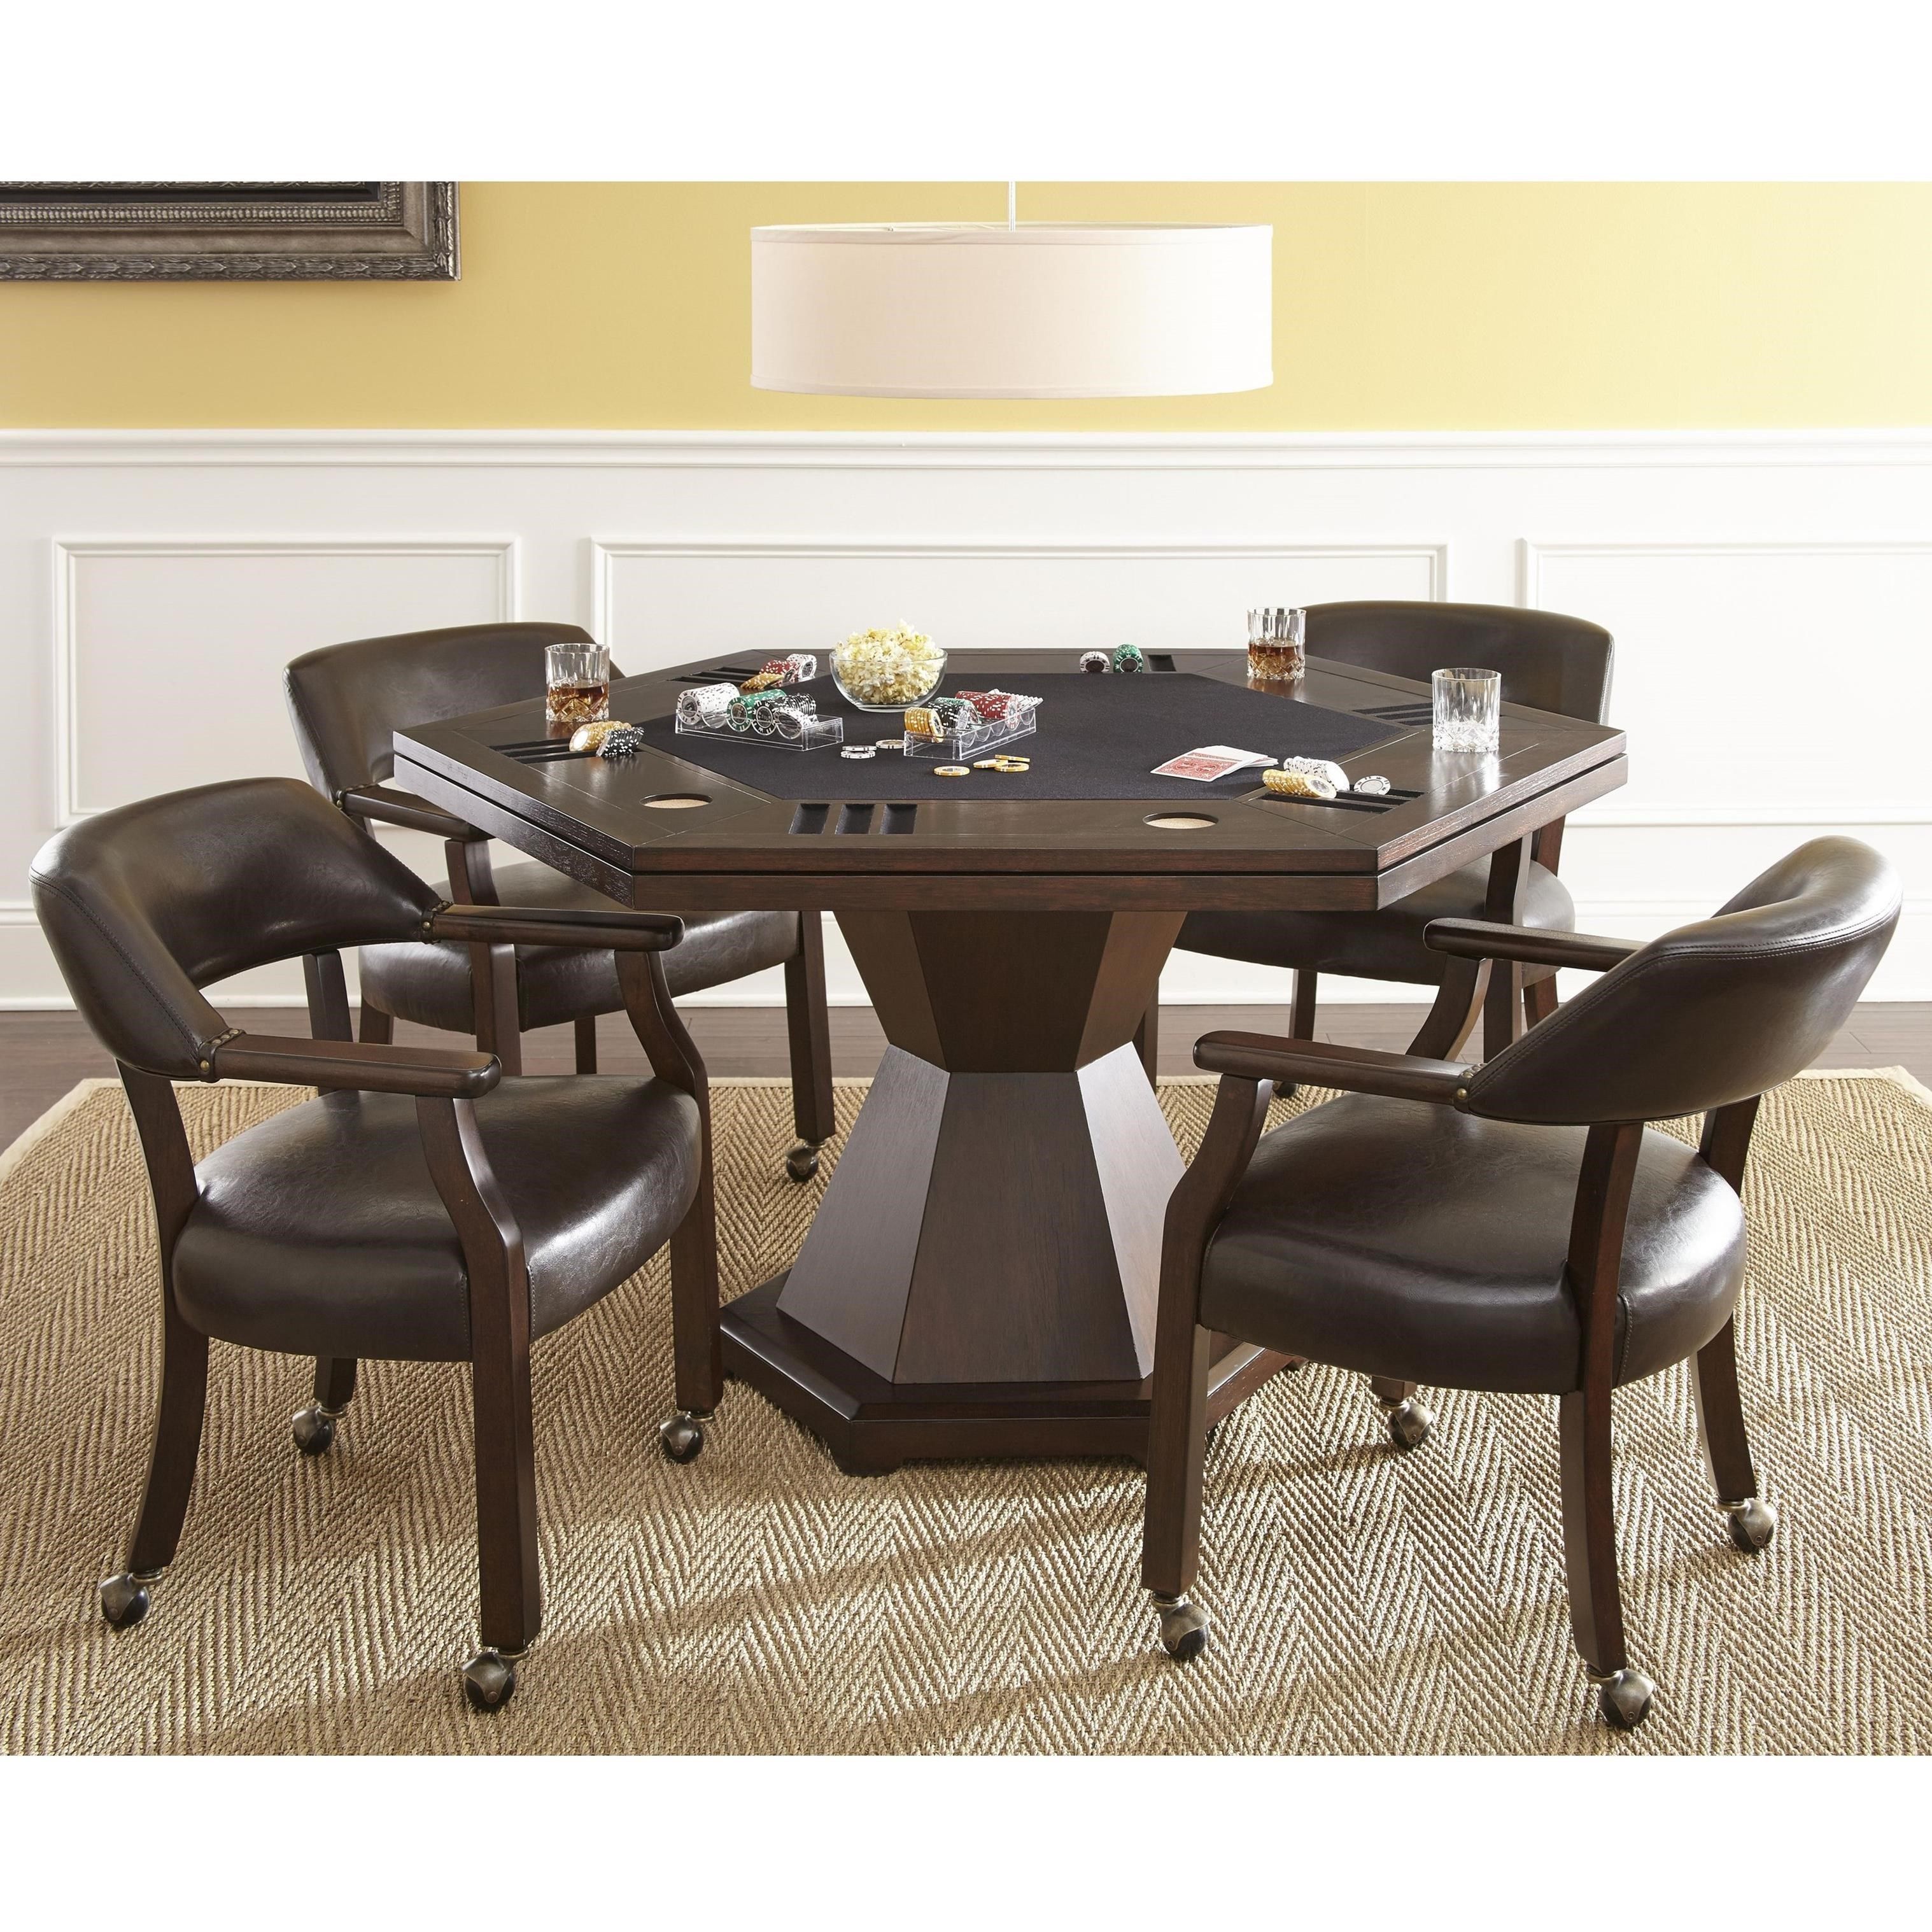 Steve Silver Morris Game Table Set With 2 In 1 Table